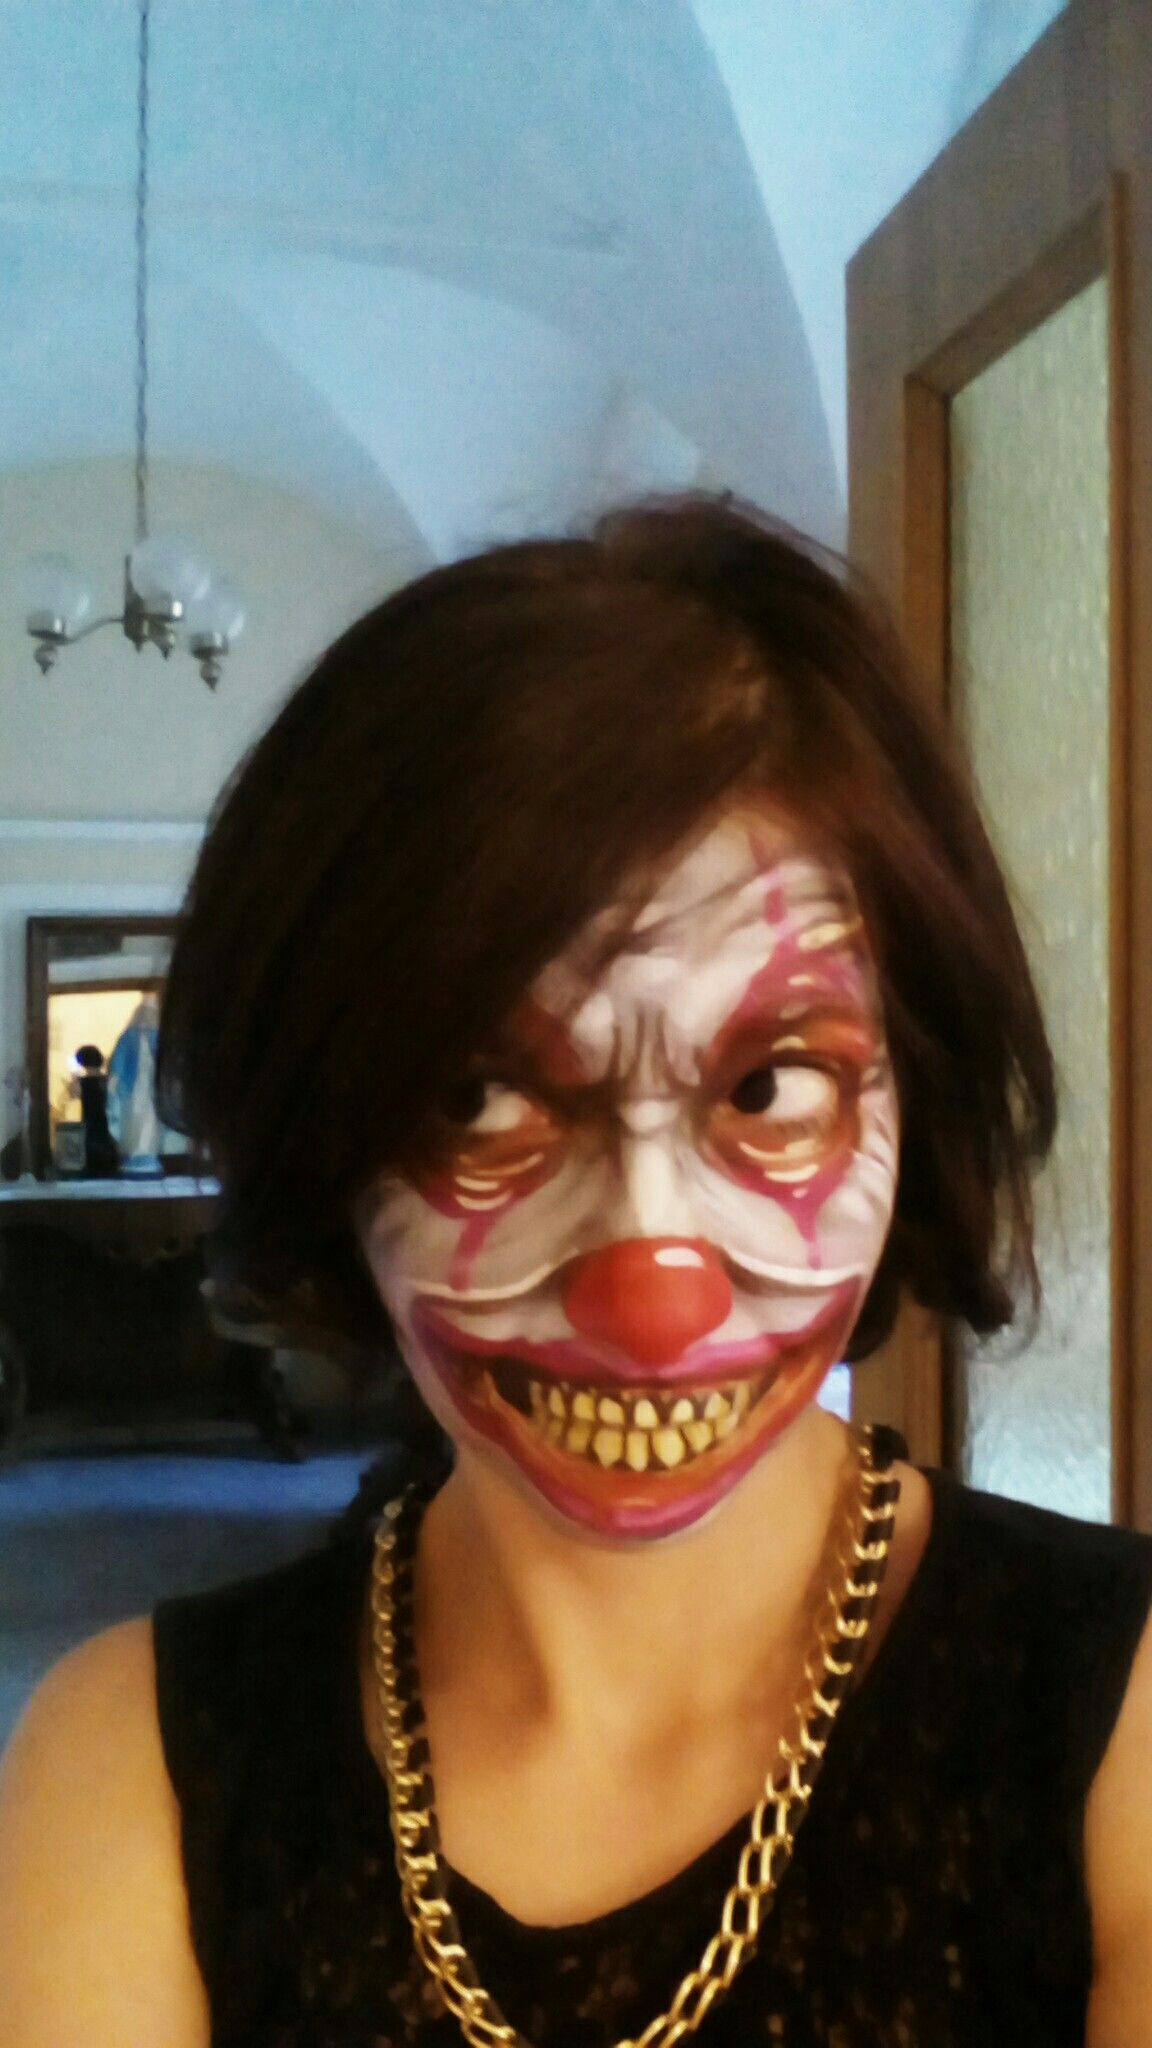 Crazy scary clown #scary #halloween #clown #facepainting | Works ...